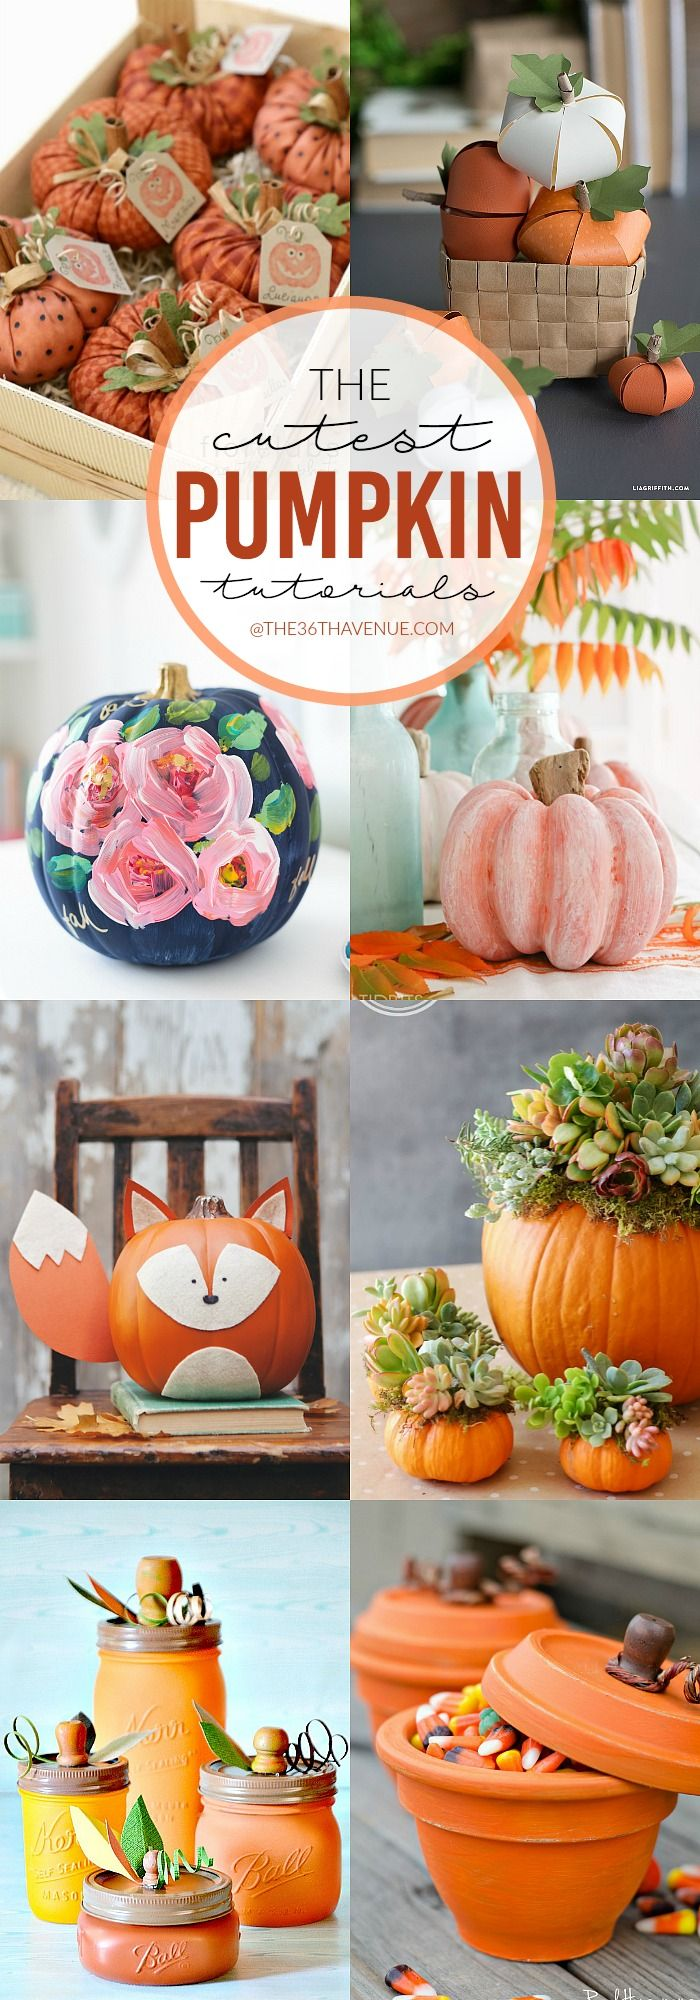 Best 25+ Small pumpkins ideas on Pinterest | Dinner in a pumpkin ...